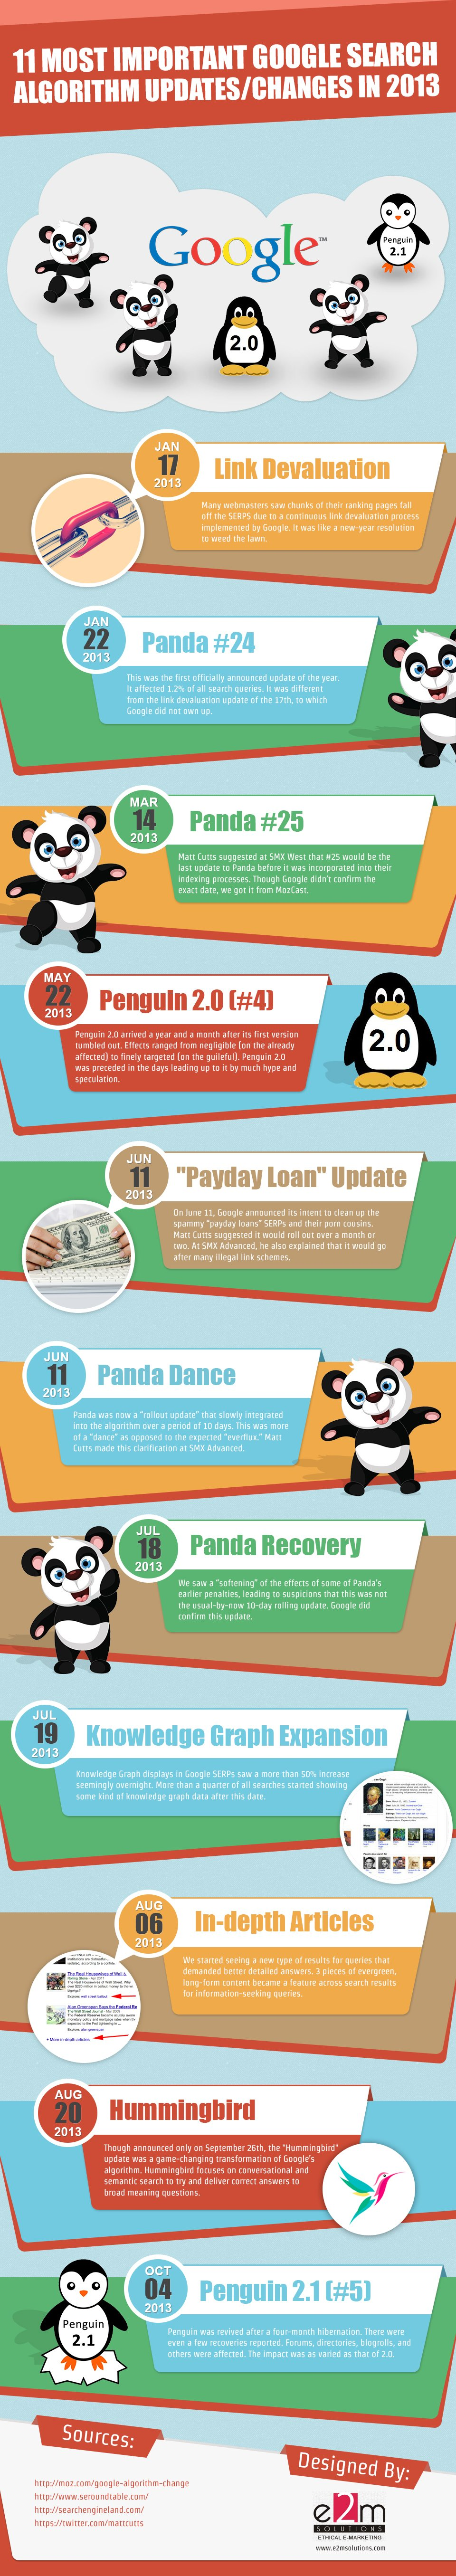 11 Most Important Google Search Algorithm Updates/Changes [Infographic]